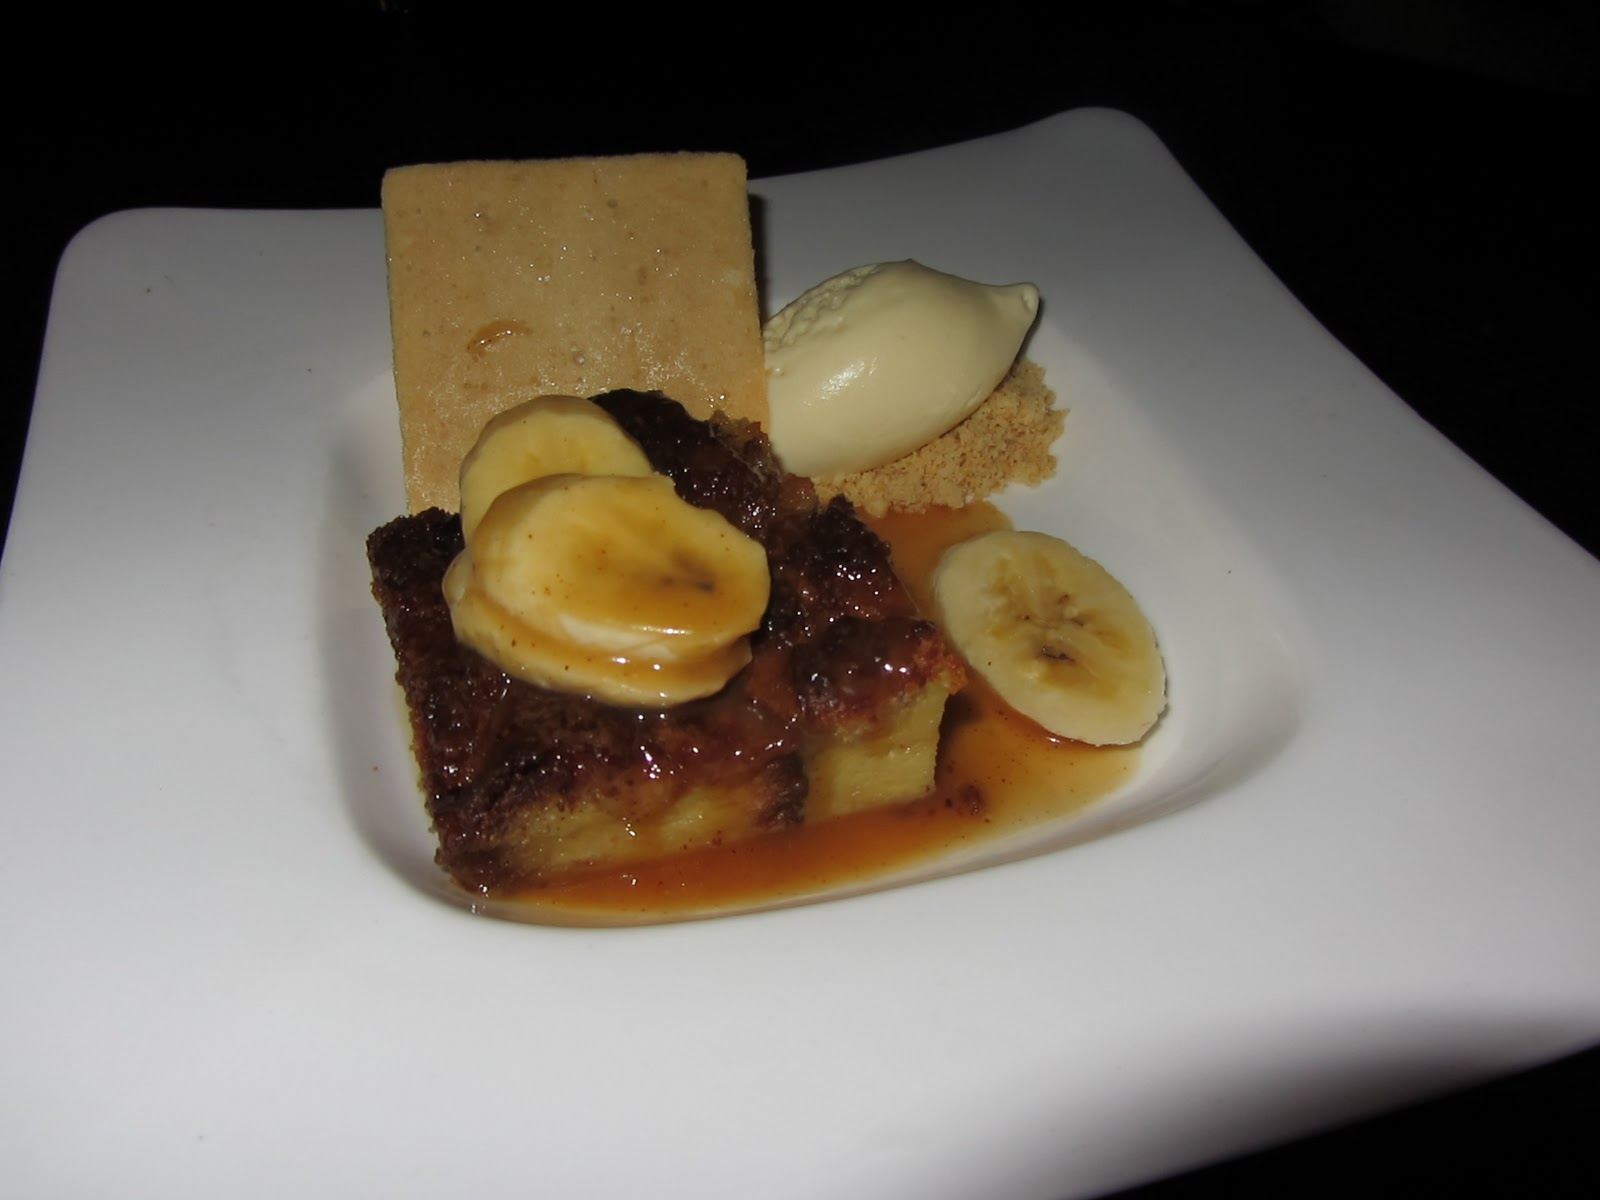 ... Bread Pudding with maple butterscotch, bananas and whiskey ice cream